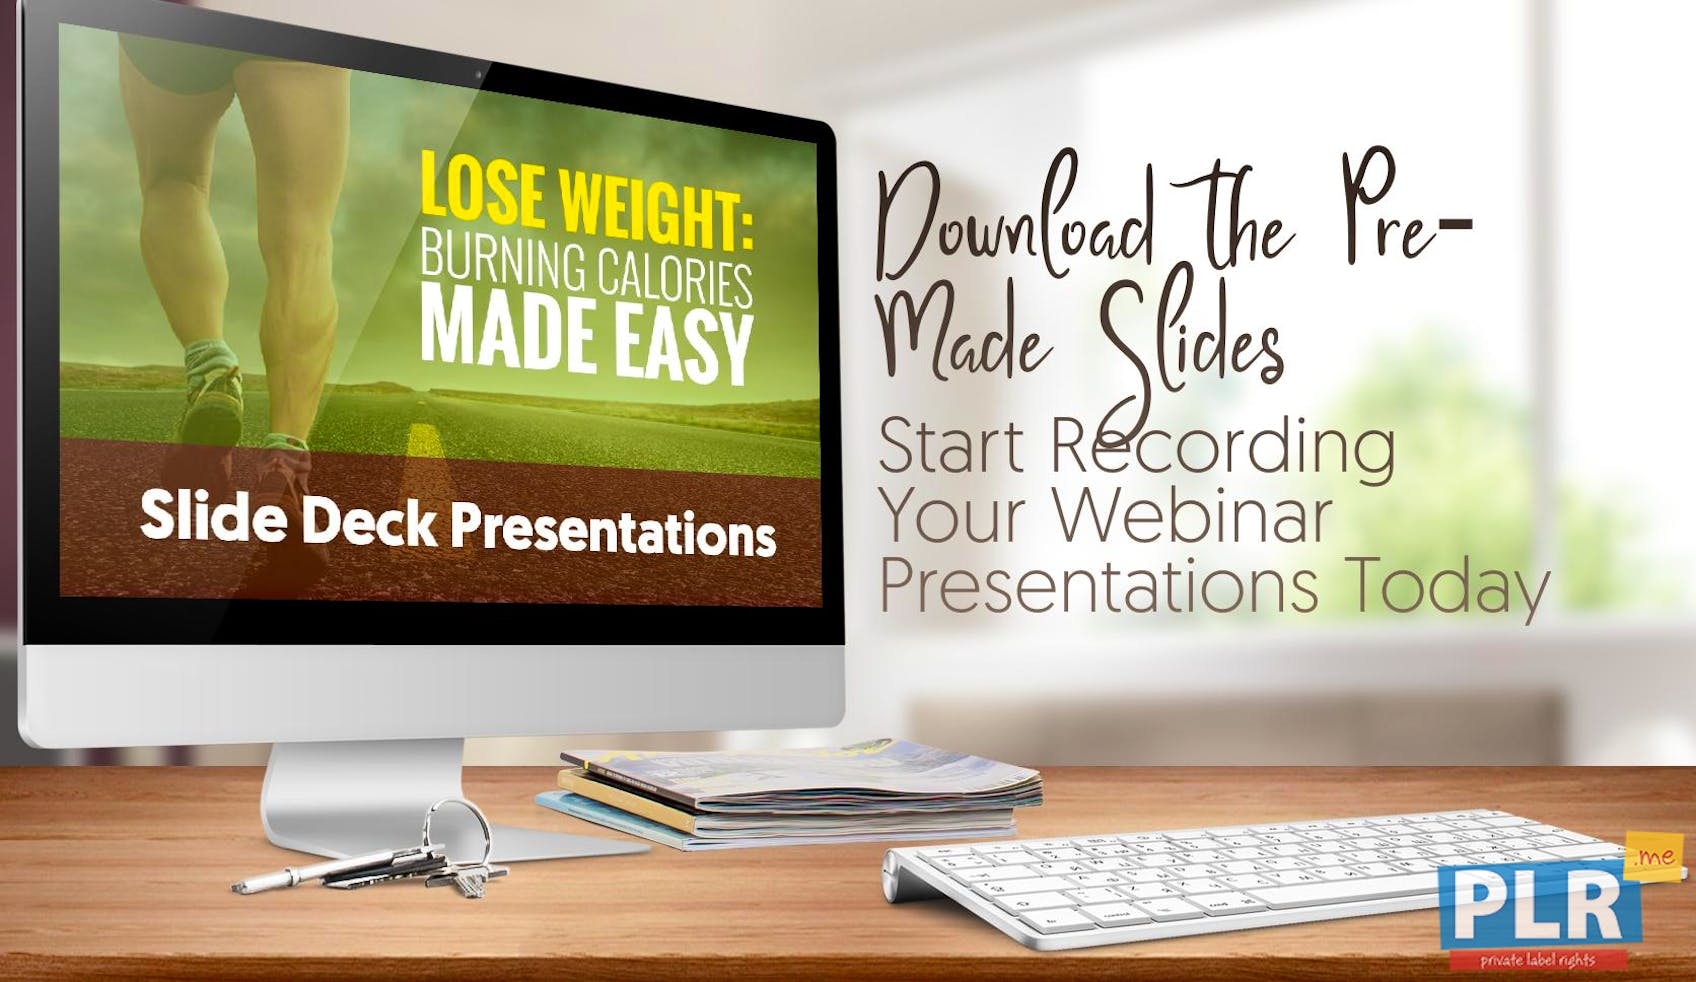 Lose Weight: Burning Calories Made Easy - Slide Deck Presentations